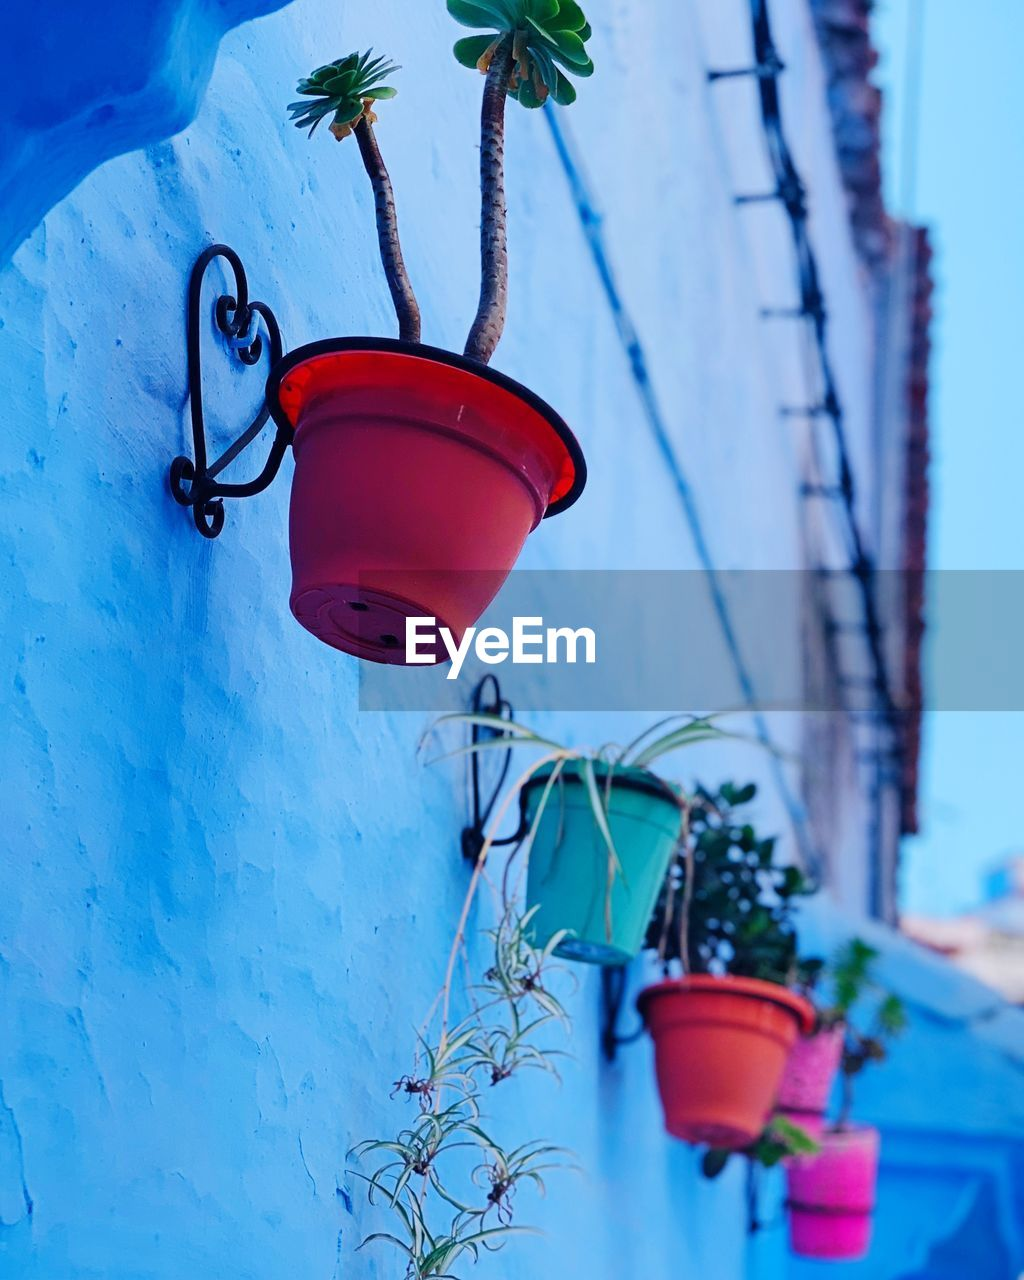 plant, nature, hanging, decoration, day, built structure, no people, architecture, low angle view, lighting equipment, metal, wall - building feature, focus on foreground, outdoors, tree, blue, red, close-up, building exterior, selective focus, electric lamp, flower pot